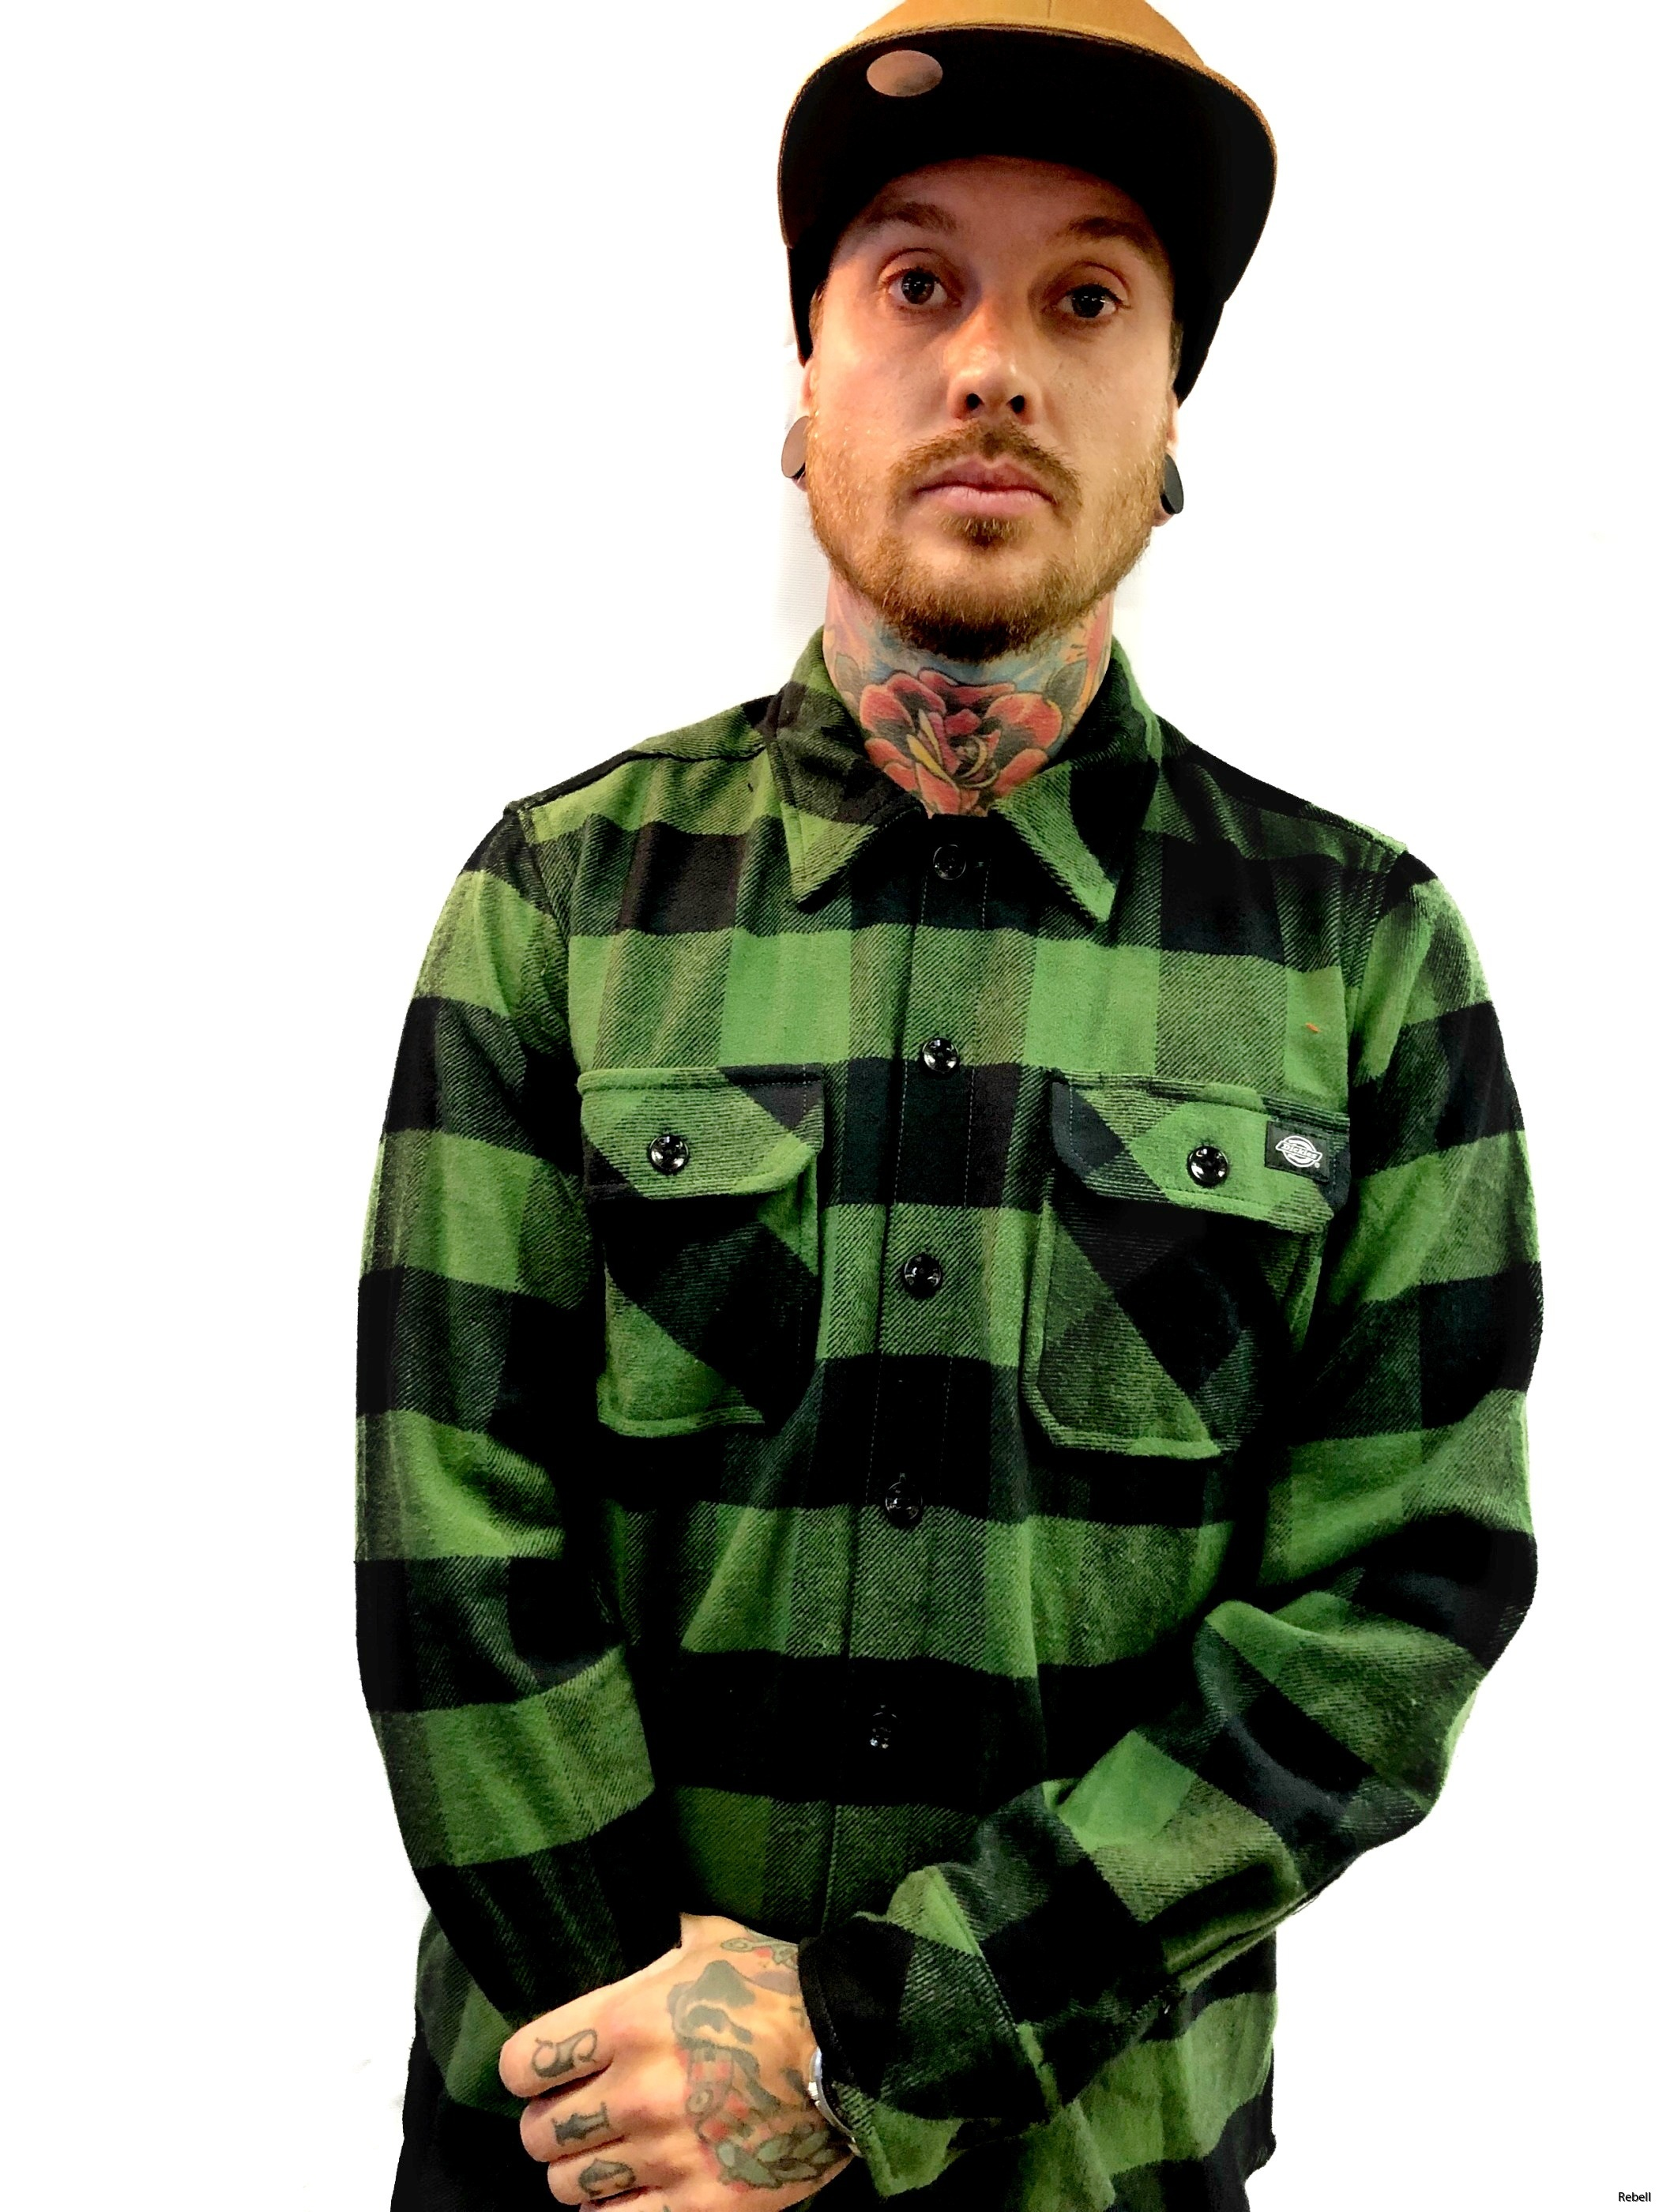 dickies dickiesflanell Pinegreen pine grönflanell rebell rebellclothes ar